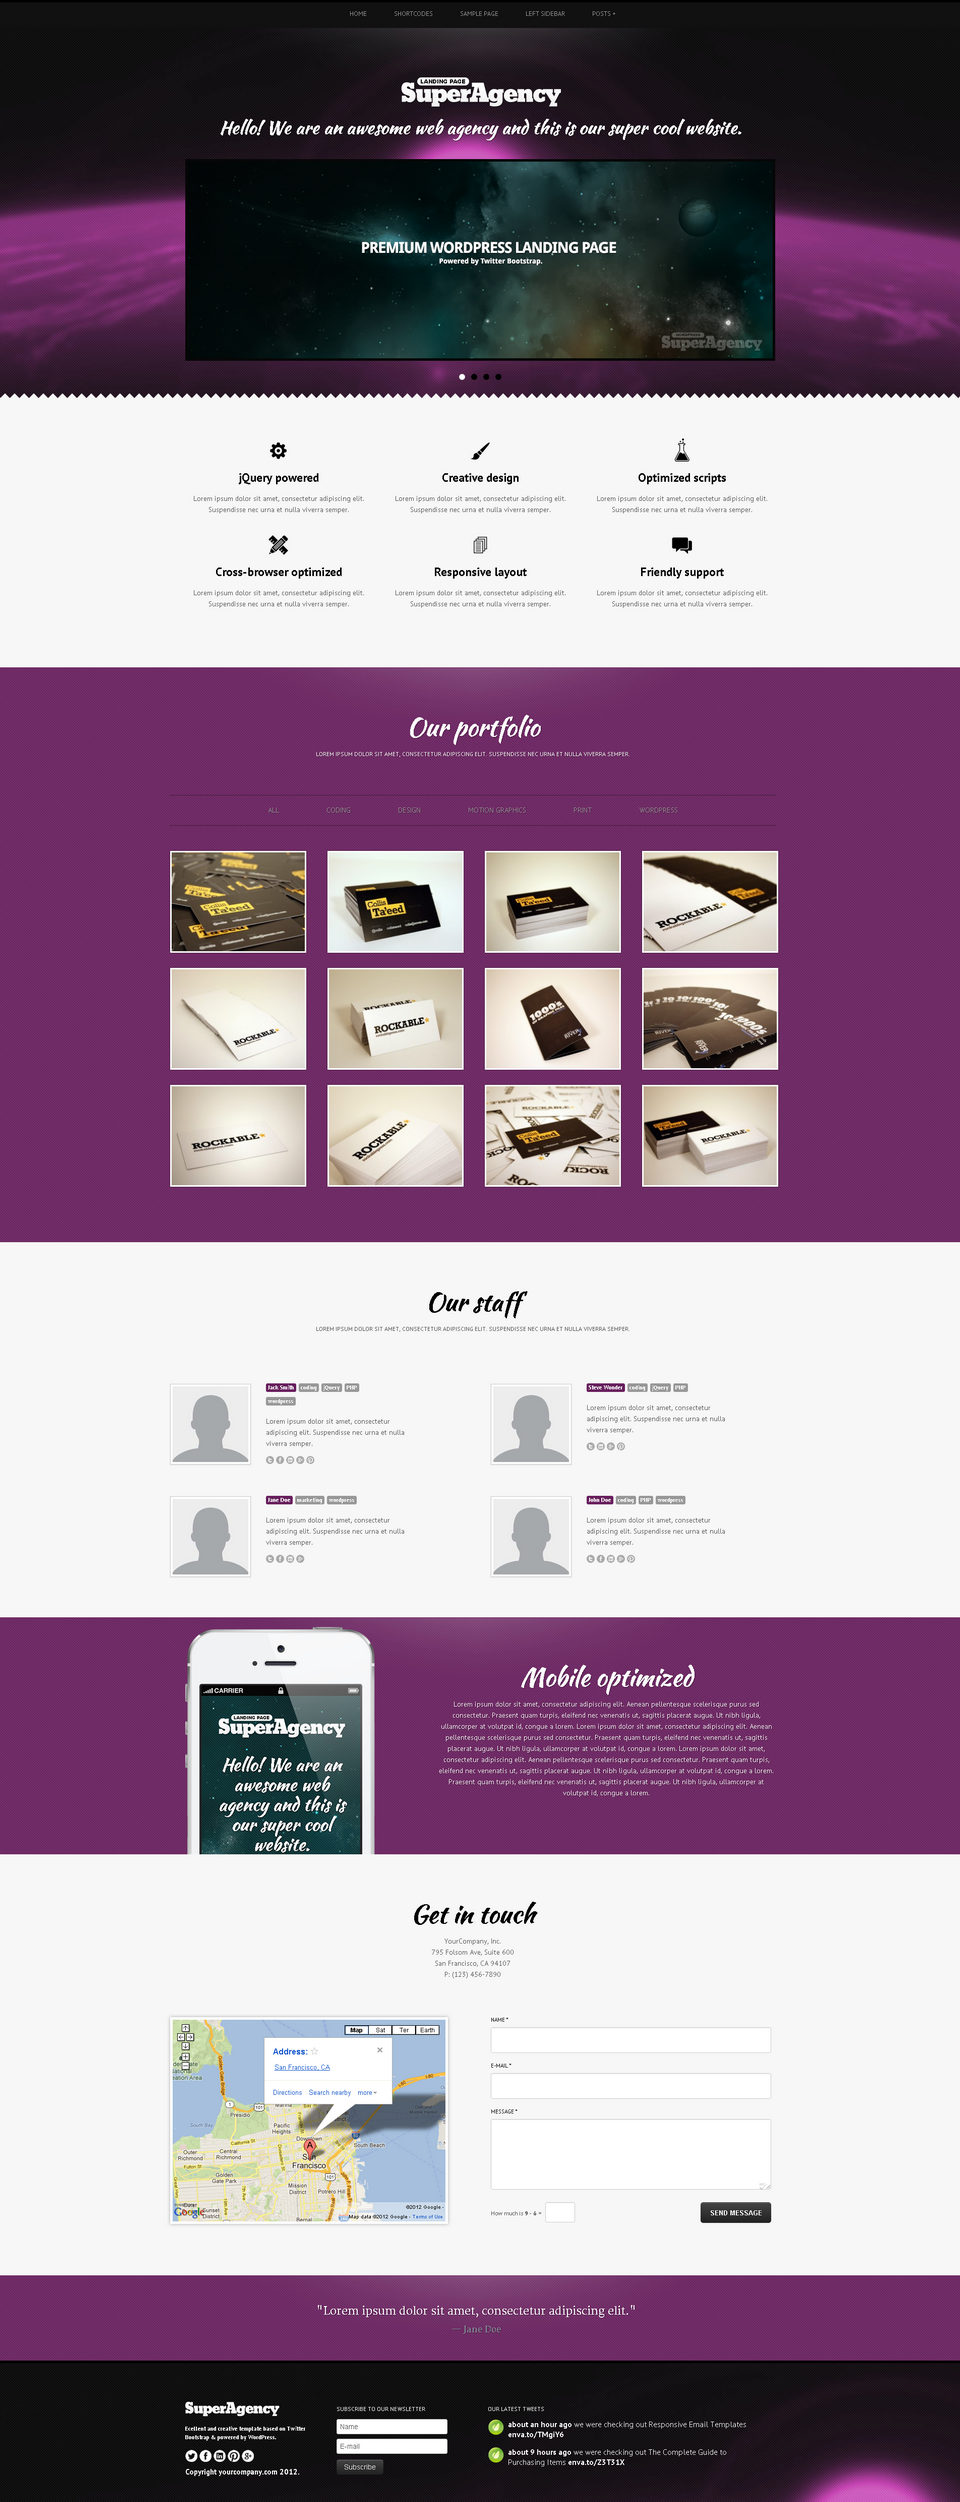 Super Agency - Responsive WordPress Single Page - Super Agency WordPress Theme - earth theme with video header